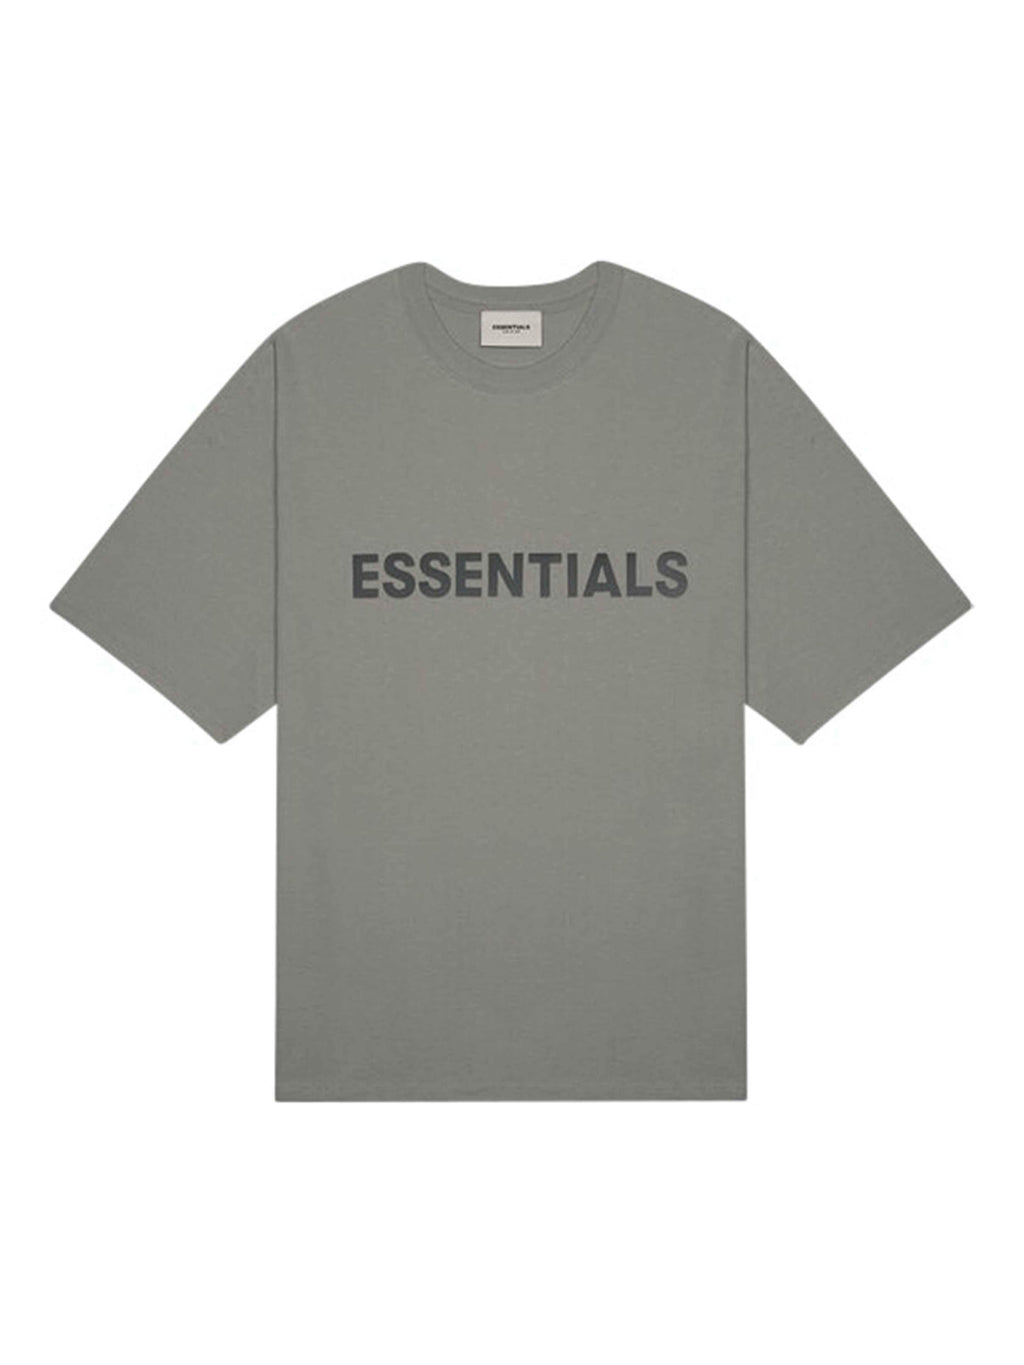 FEAR OF GOD ESSENTIALS 3D Silicon Applique Boxy T-Shirt Charcoal